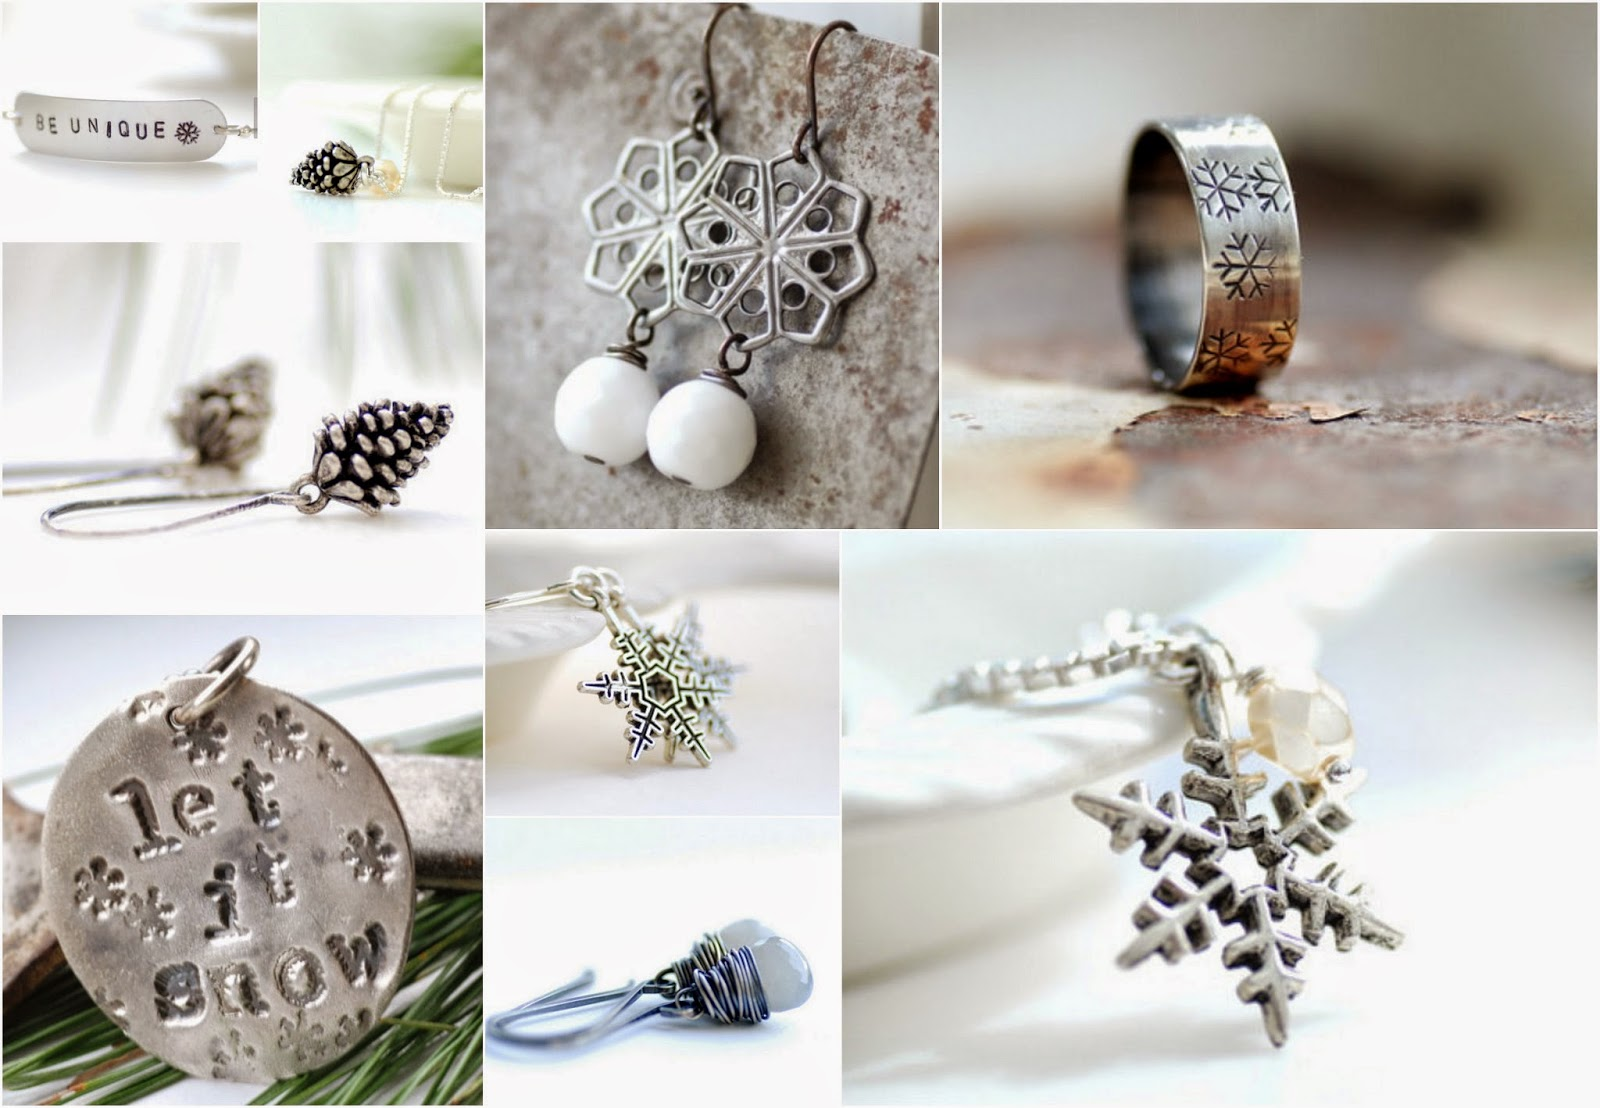 https://www.etsy.com/shop/WildWomanJewelry/search?search_query=winter&order=date_desc&view_type=gallery&ref=shop_search